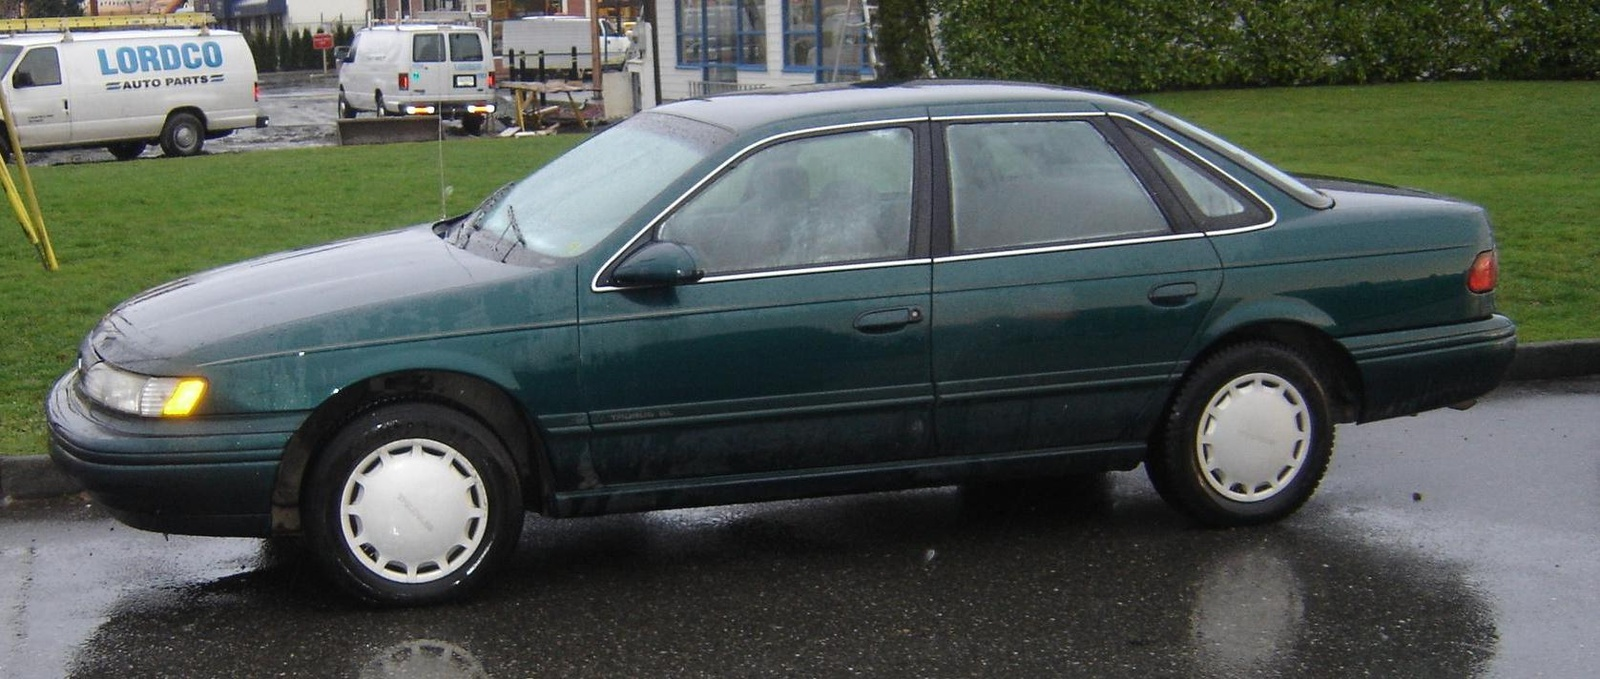 ford taurus gl owners manual